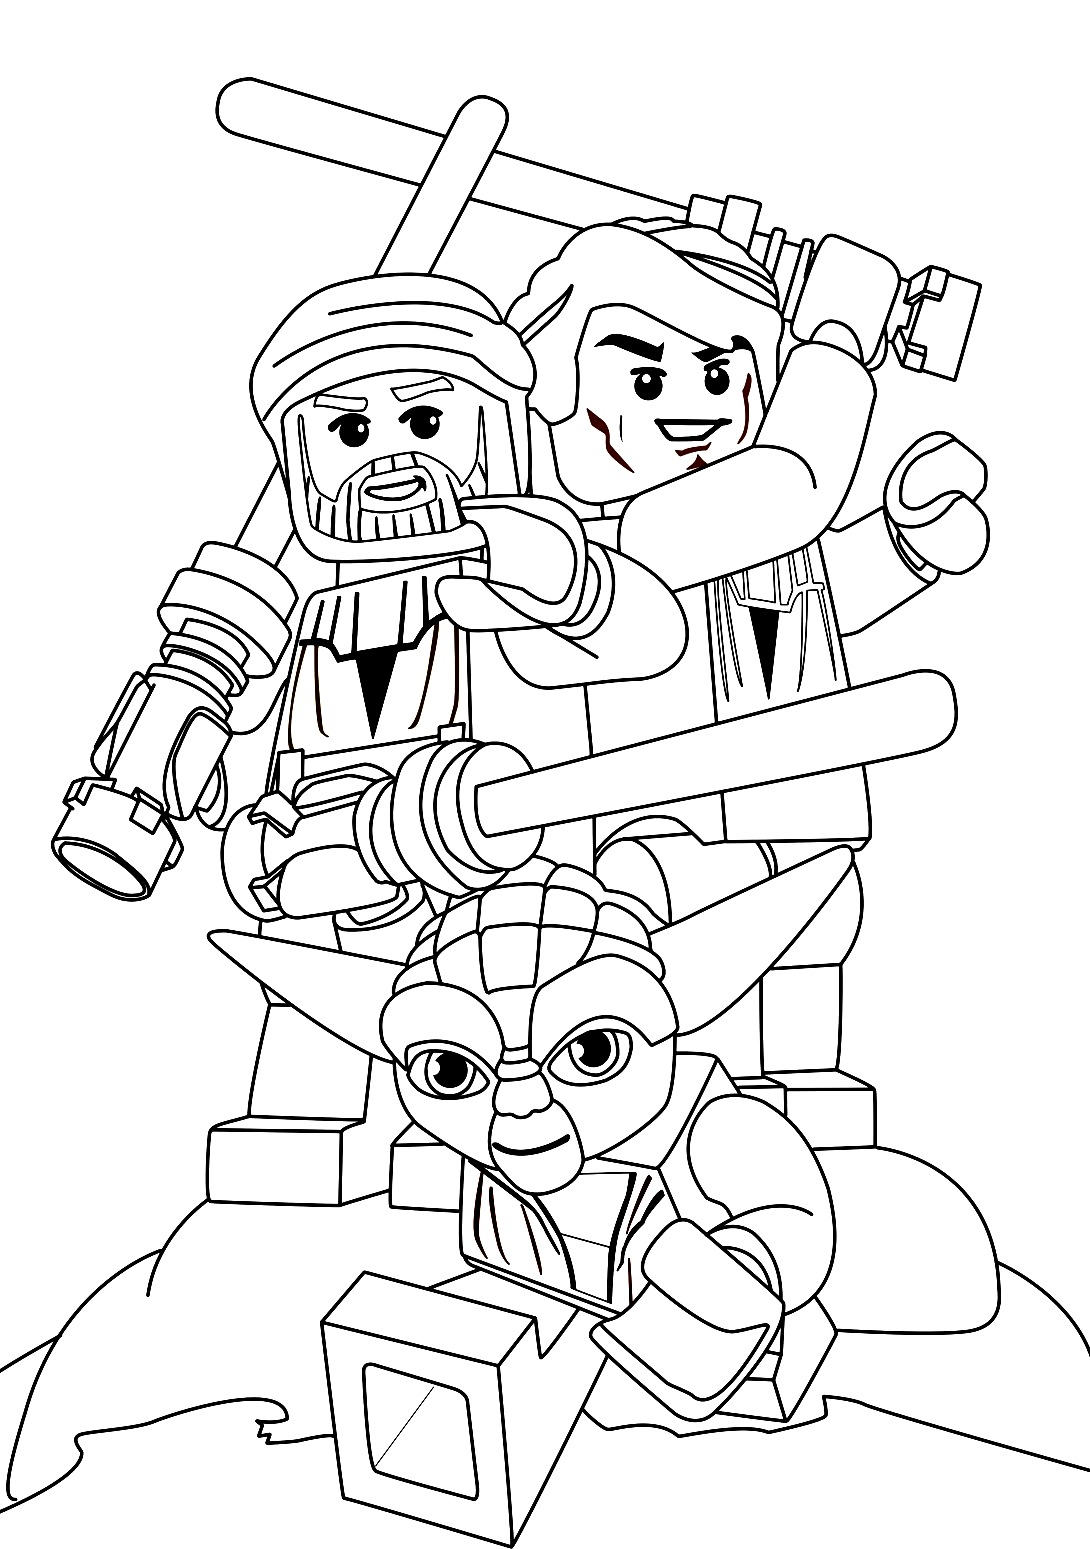 1090x1549 Star Wars Coloring Page Lego Star Wars Coloring Page